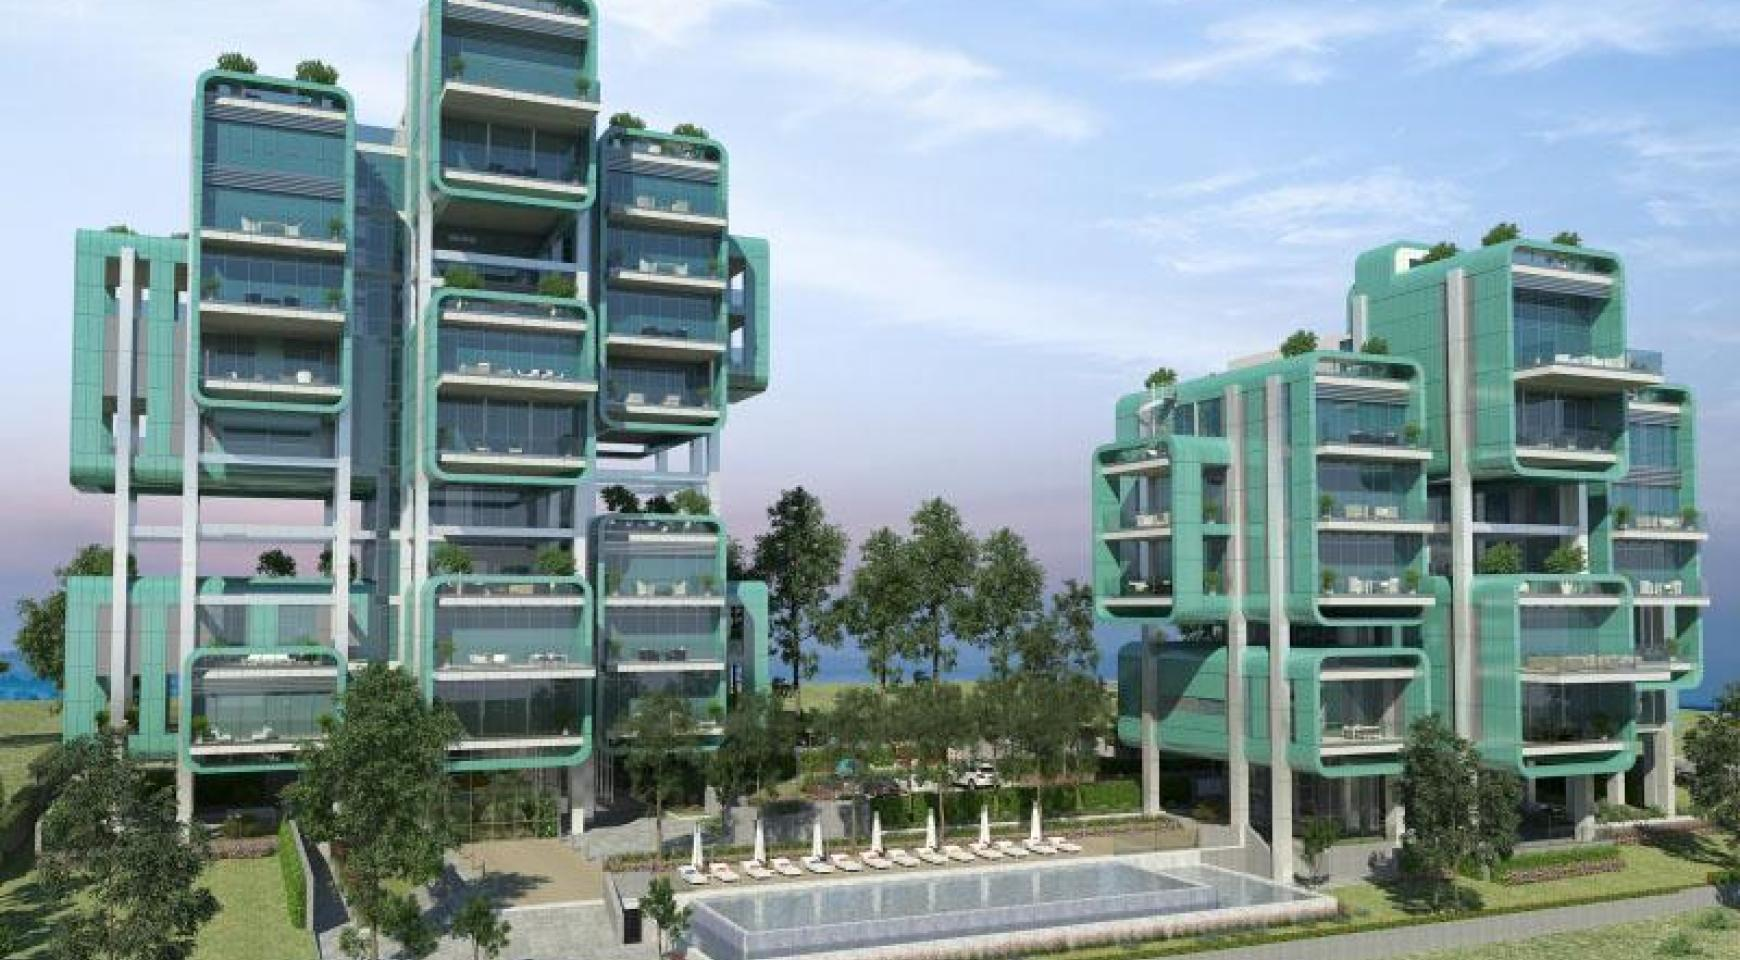 Elite 3 Bedroom Apartment with Roof Garden within a New Complex - 26